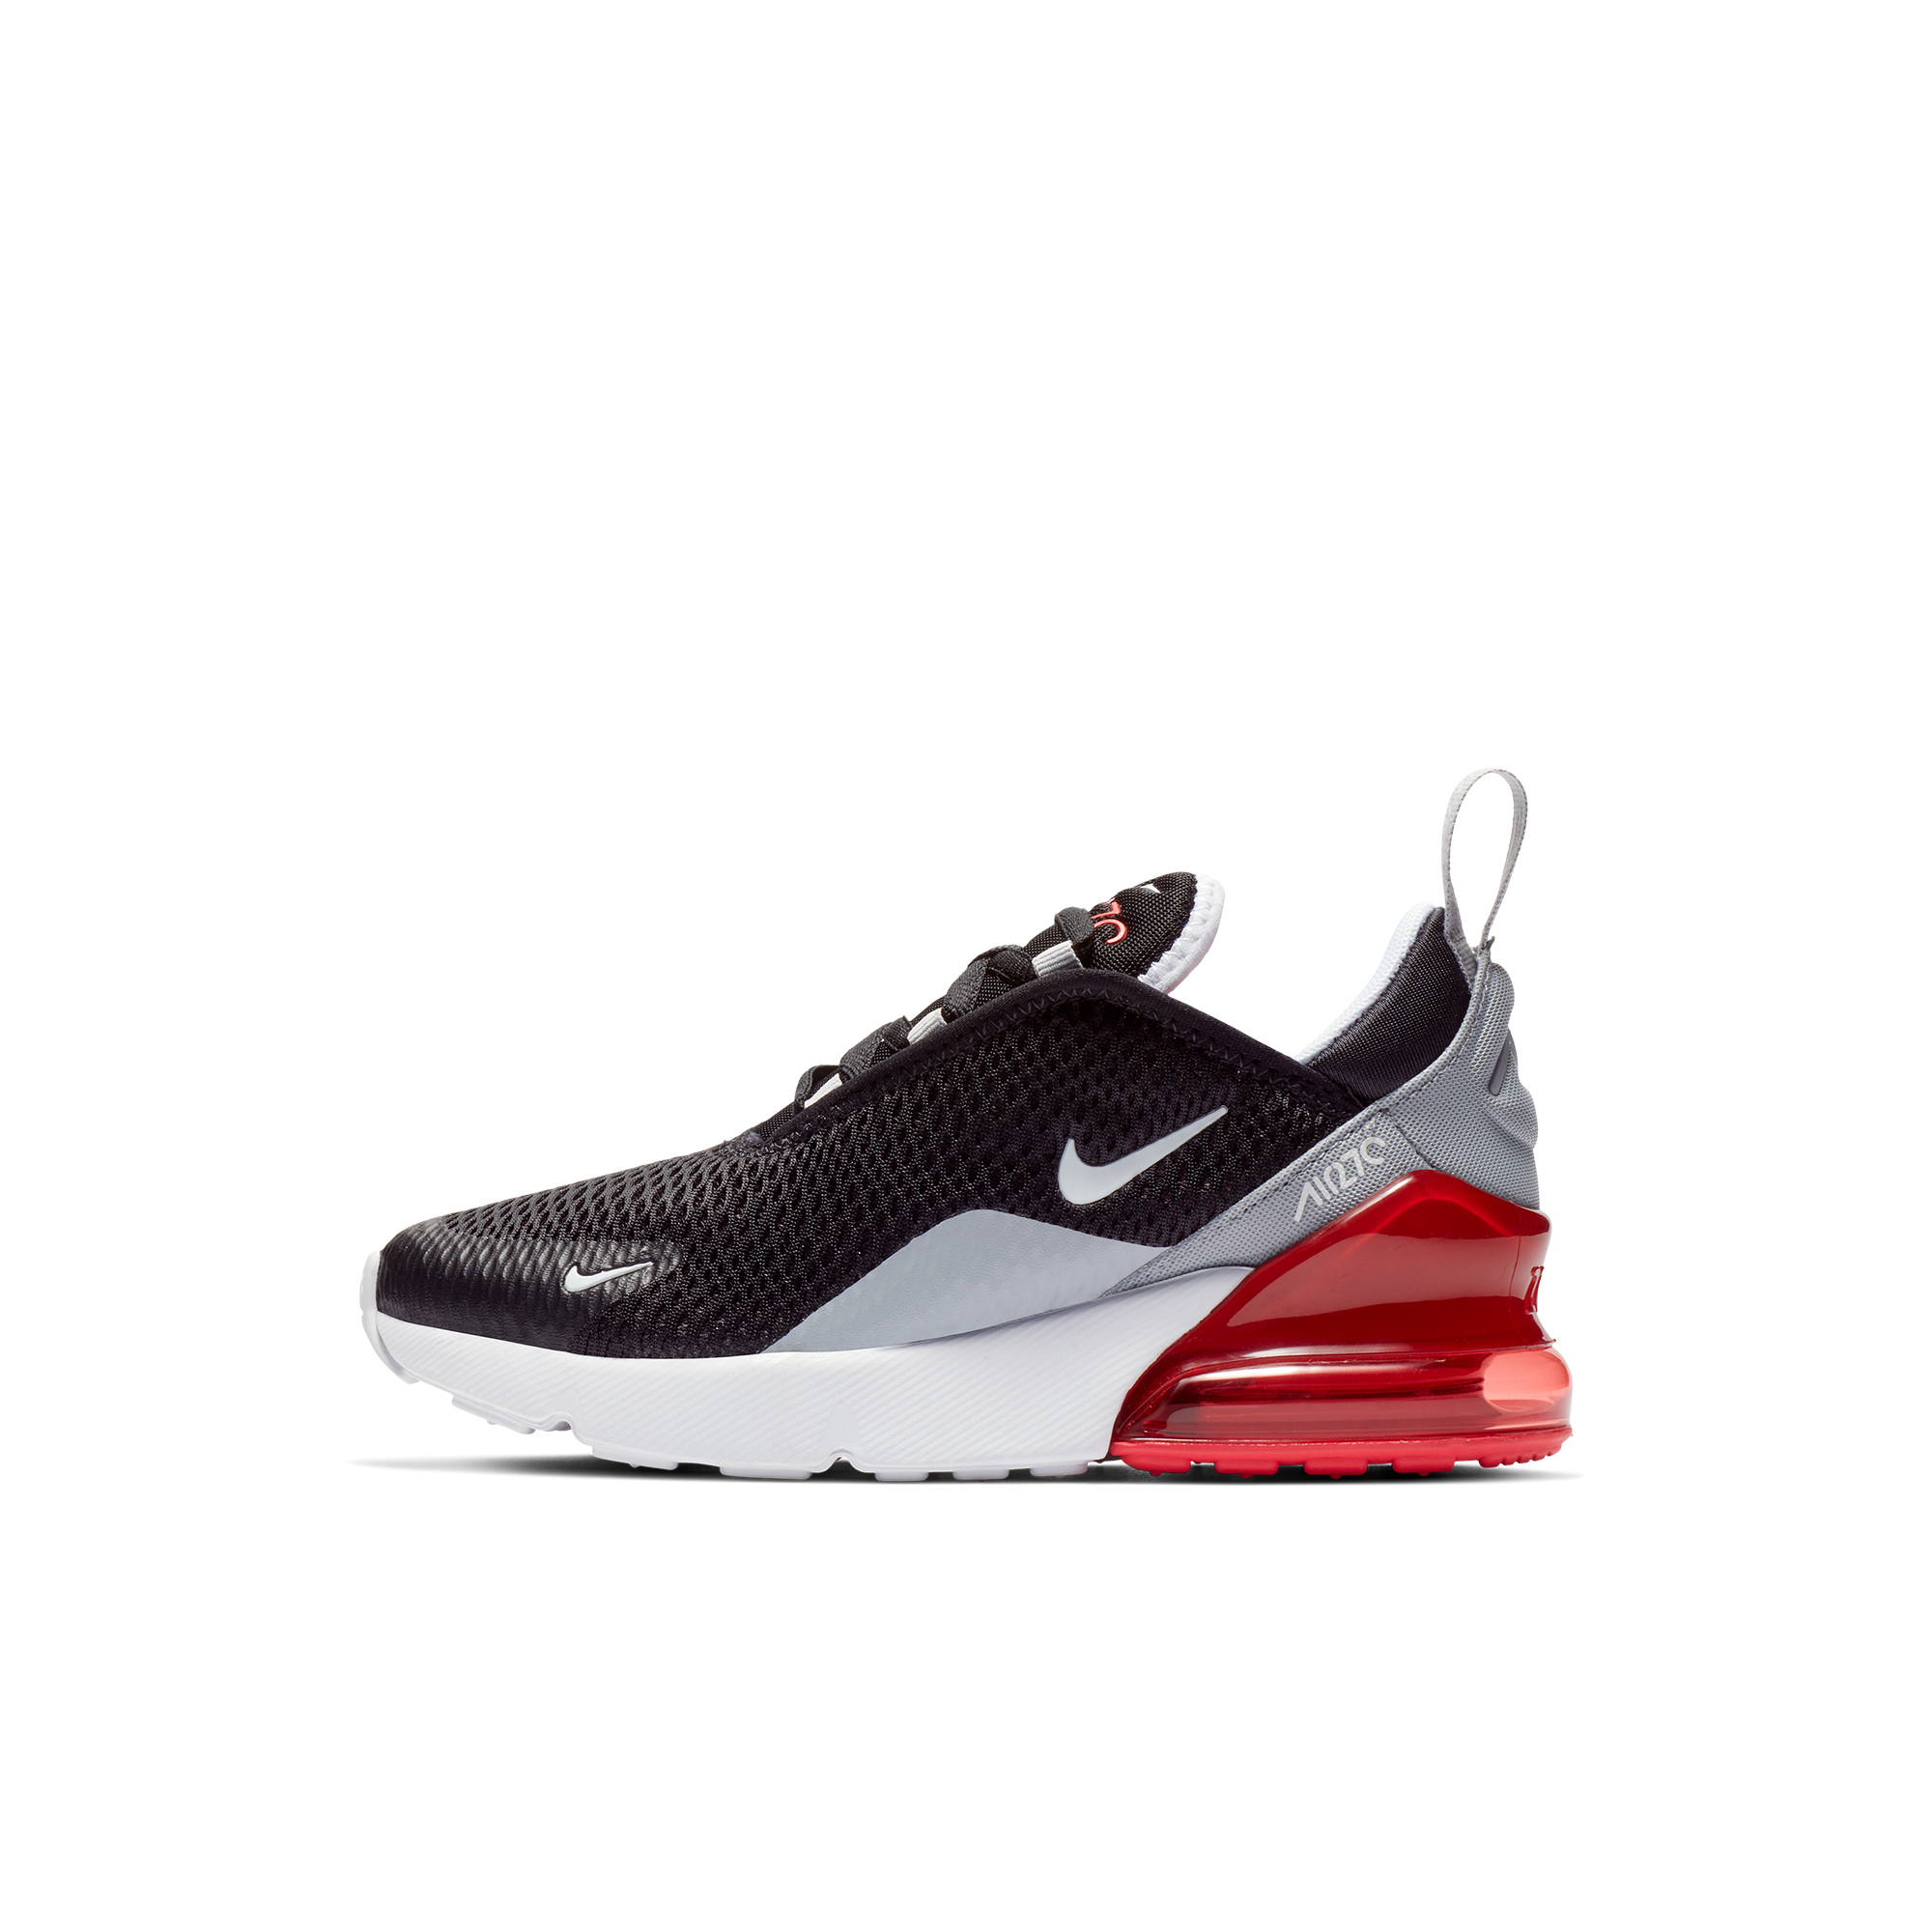 NIKE AIR MAX 270 enfants Original enfants chaussures de course Sports confortables en plein AIR maille baskets #943345 - 5